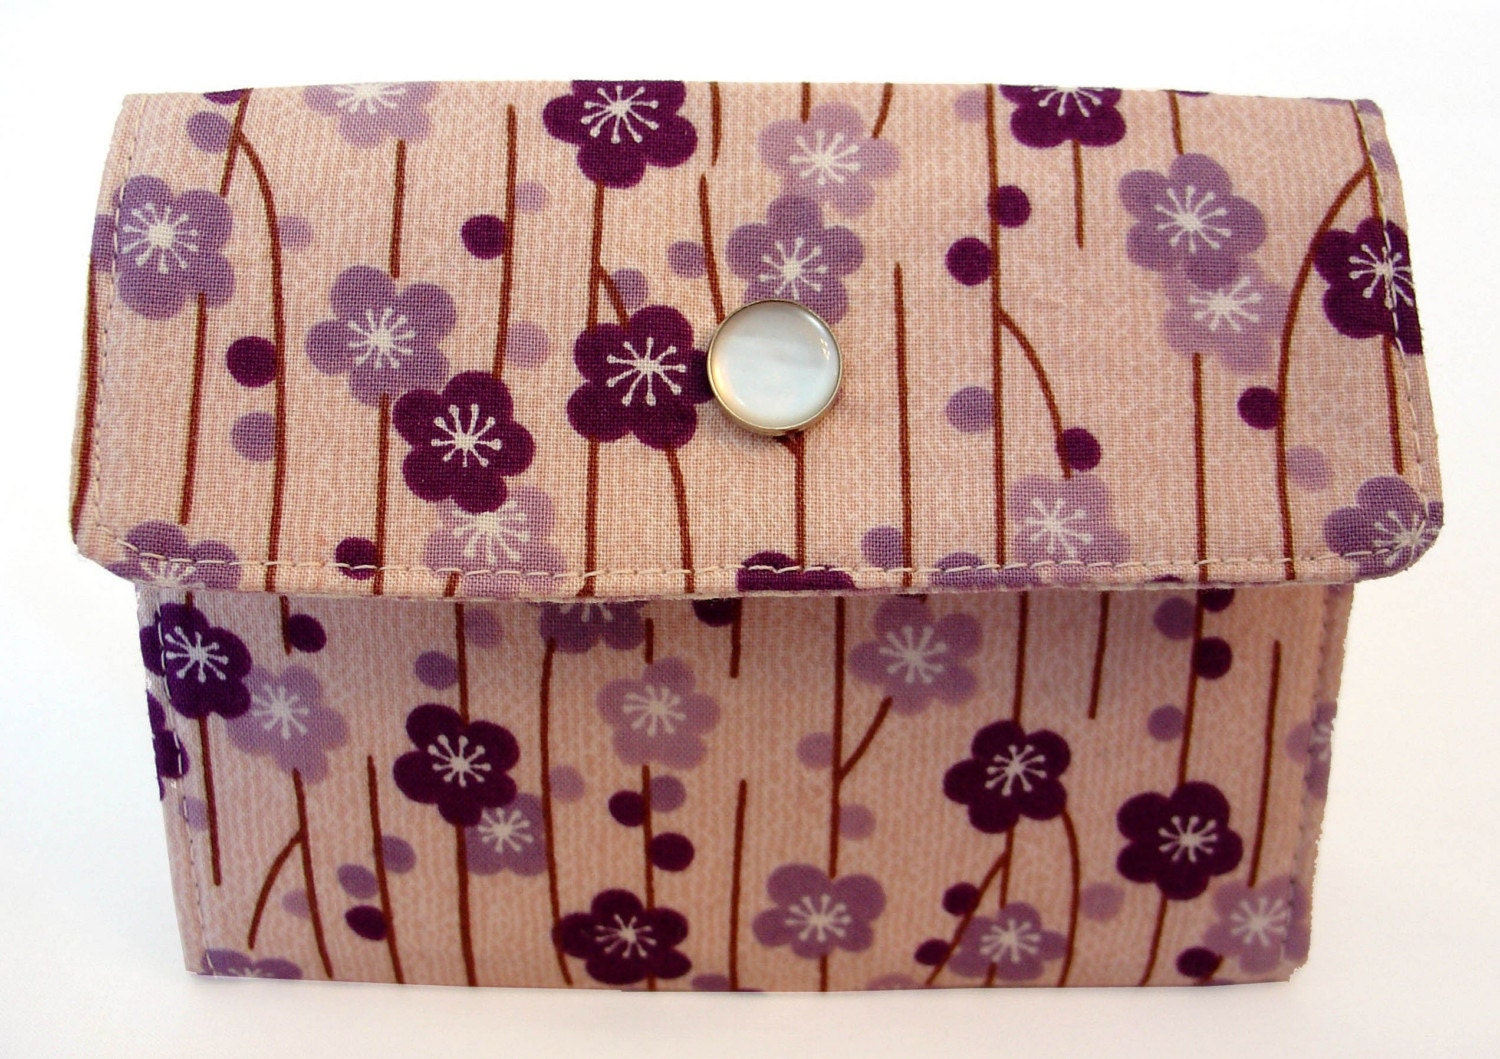 Purple sakura blossoms 3 pocket flip wallet : Asian iCandy Store, Unique Asian Arts and Gifts From Independent Artists :  asian-inspired cherry blossom handmade wallet